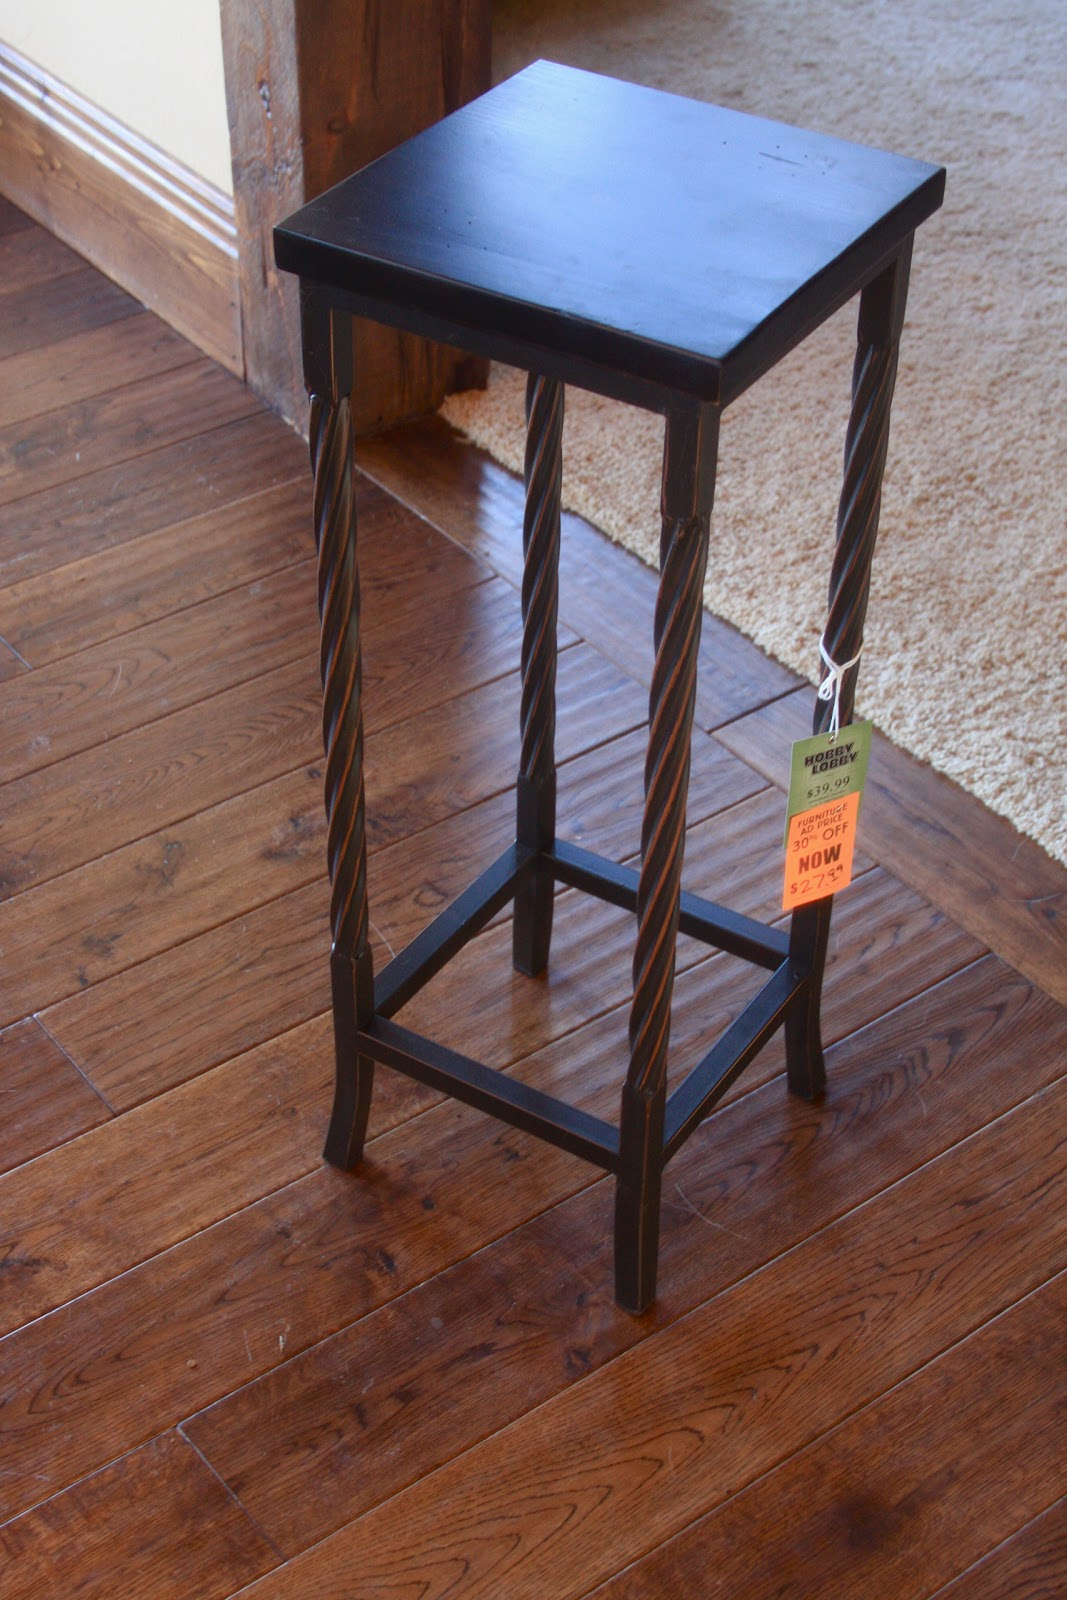 hobby lobby table and chairs recliner costco diy metallic furniture fashions by clarissa